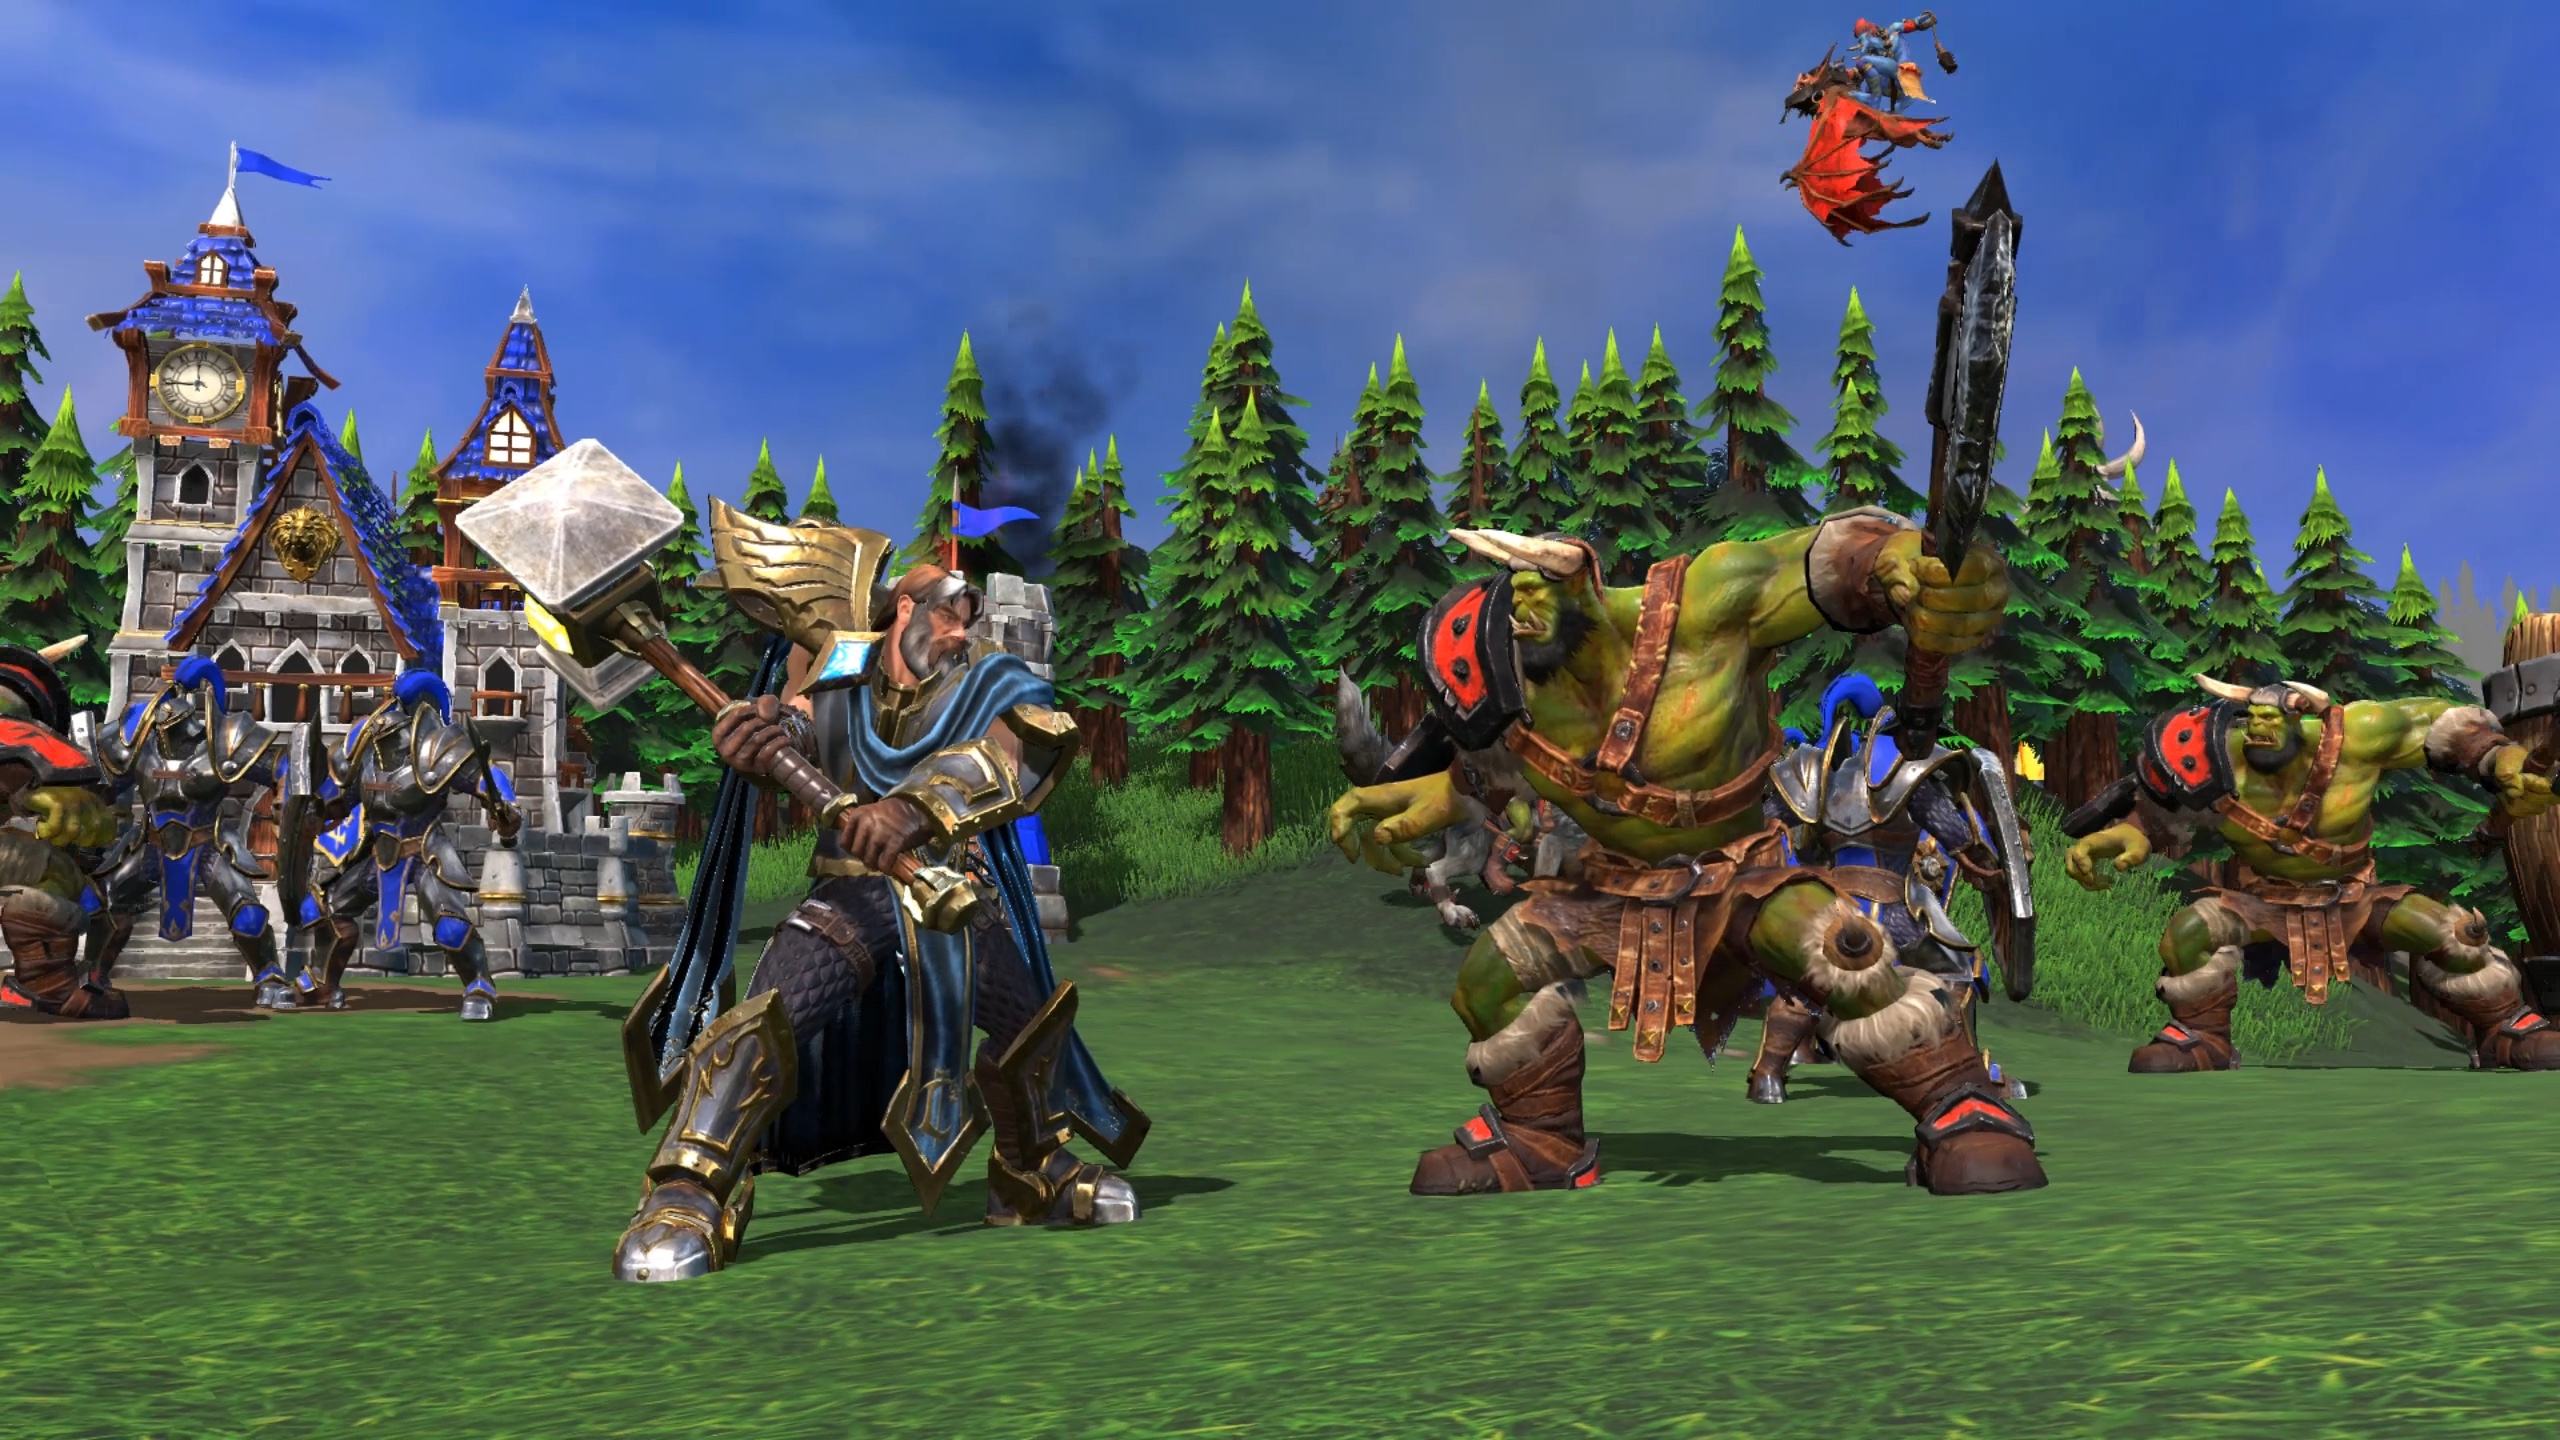 Warcraft 3: Reforged is more than just a remaster of Blizzard's